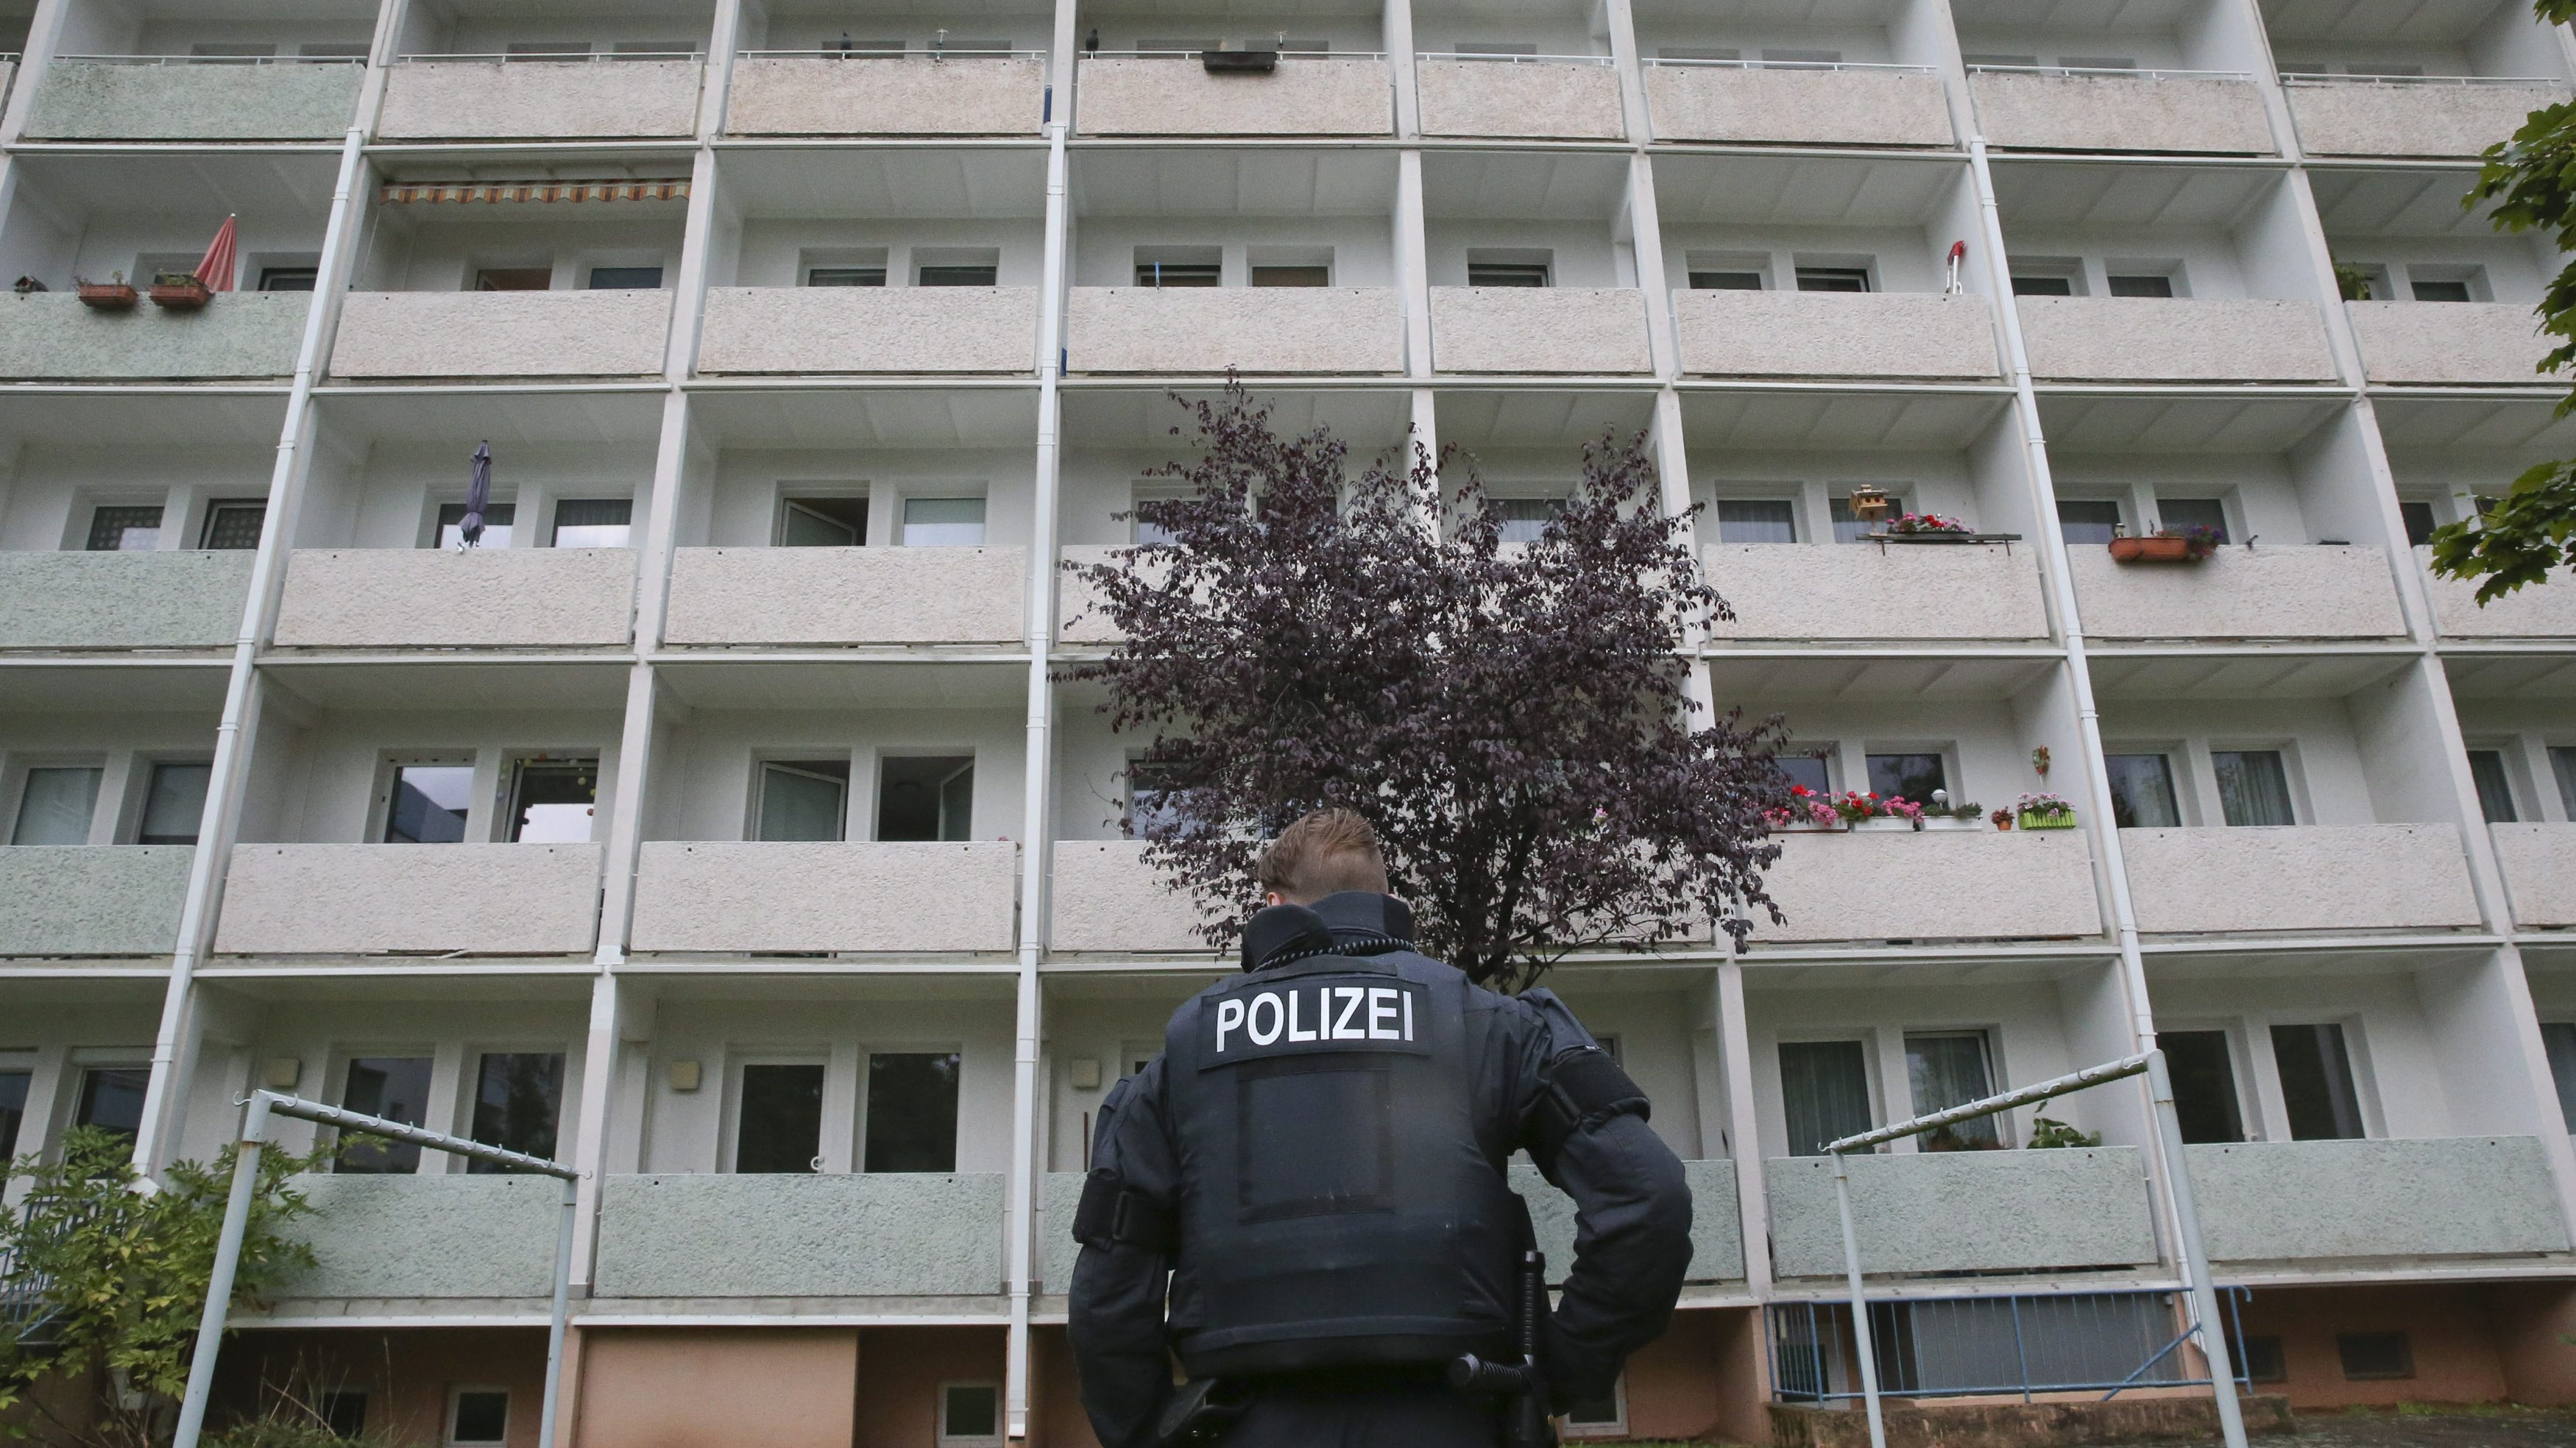 German policemen search a housing area in Chemnitz on suspicion that a bomb attack was being planned.